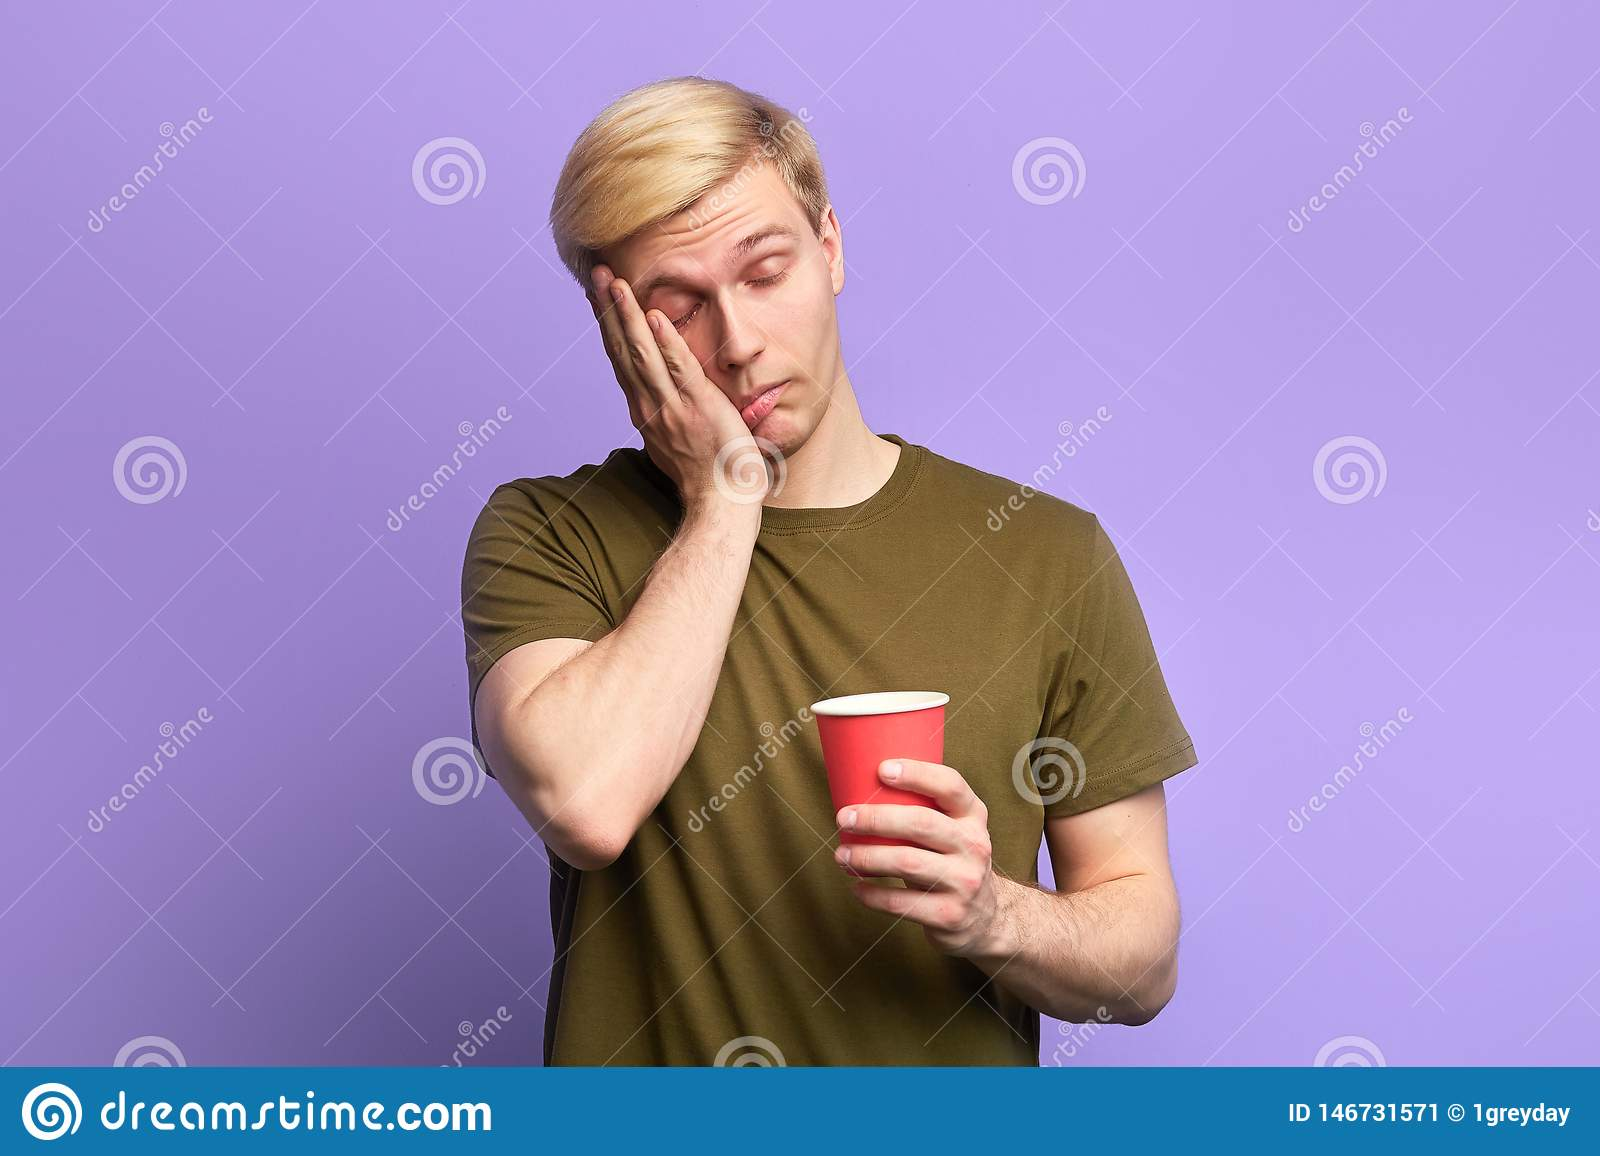 Displeased tired sleepy man with beverage in disposable plastic red cup